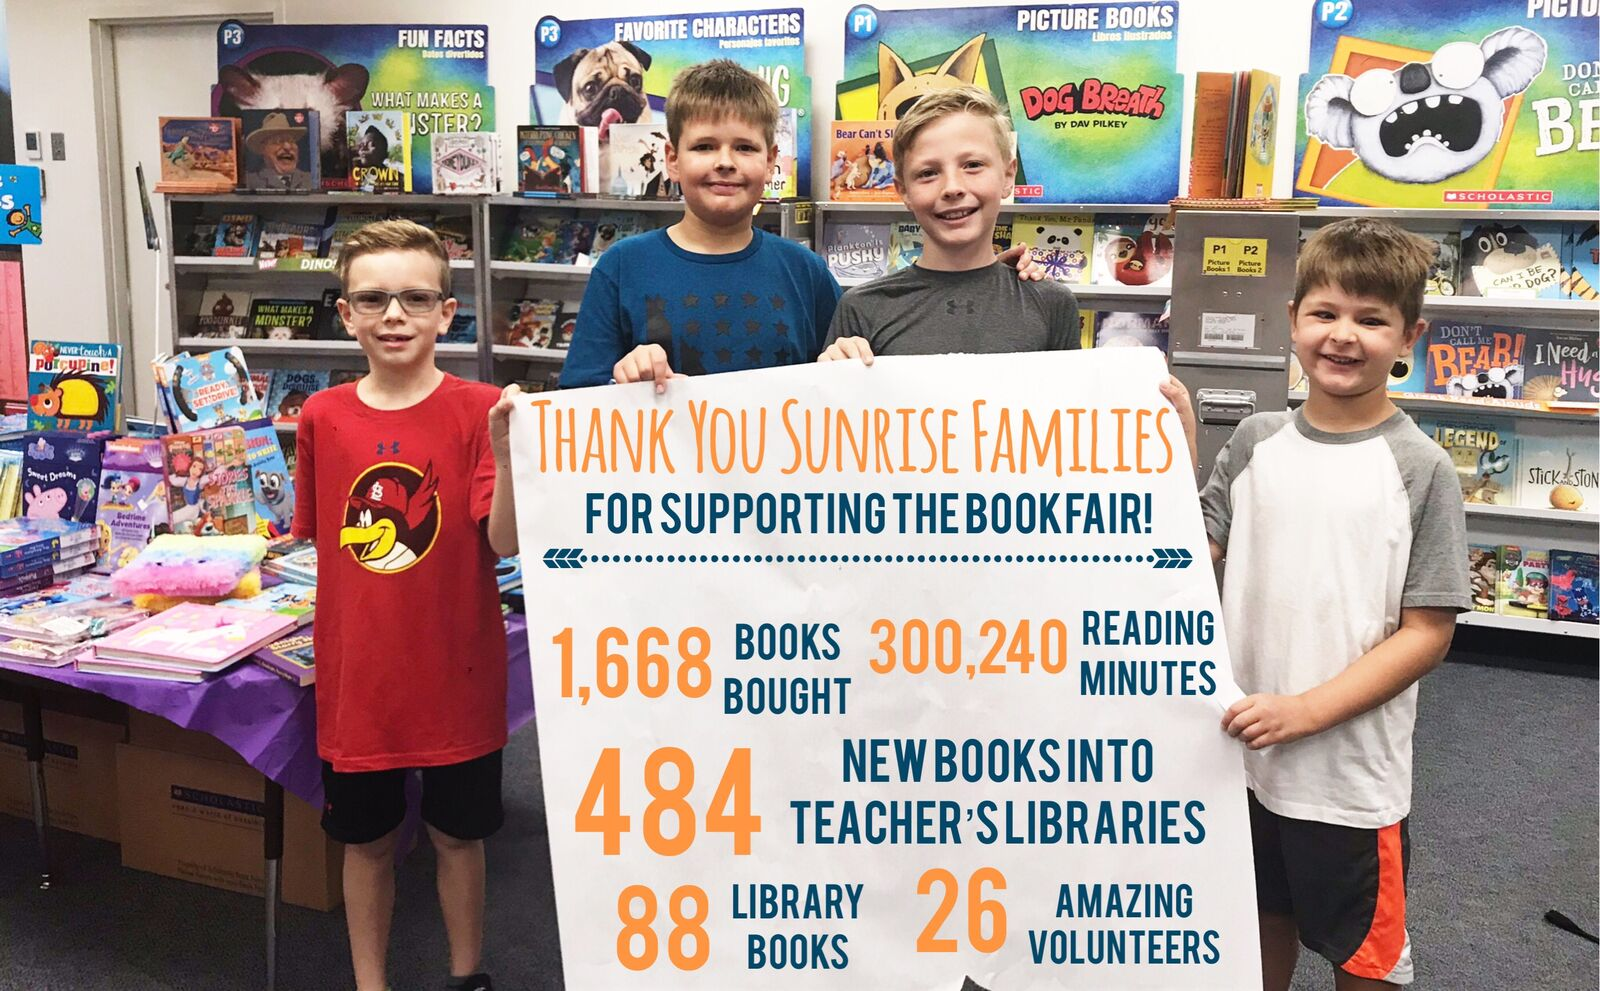 Kids holding poster with book fair sales numbers